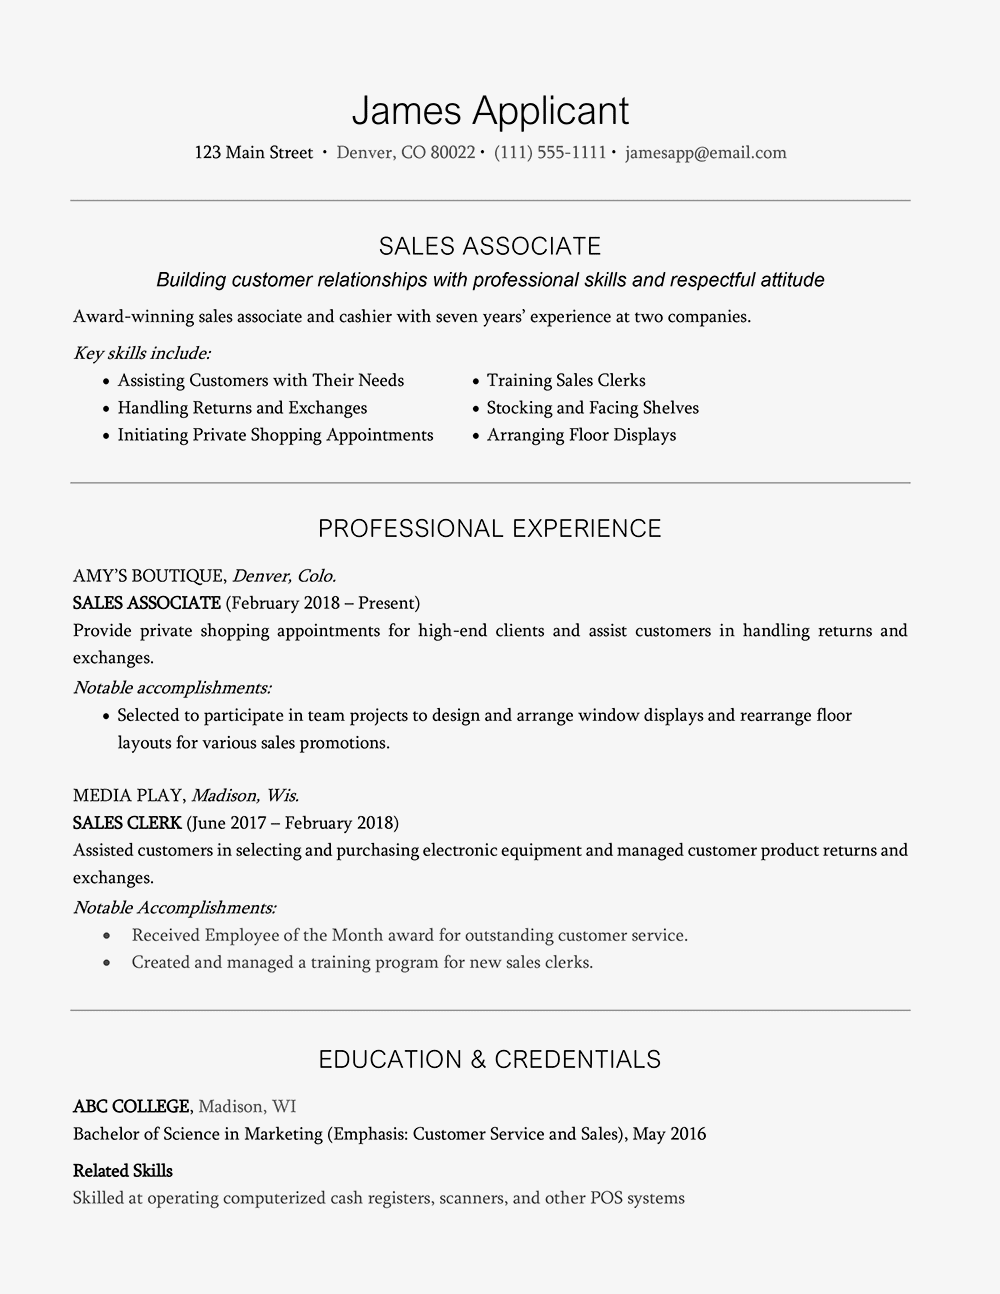 Resume Headline Examples And Writing Tips